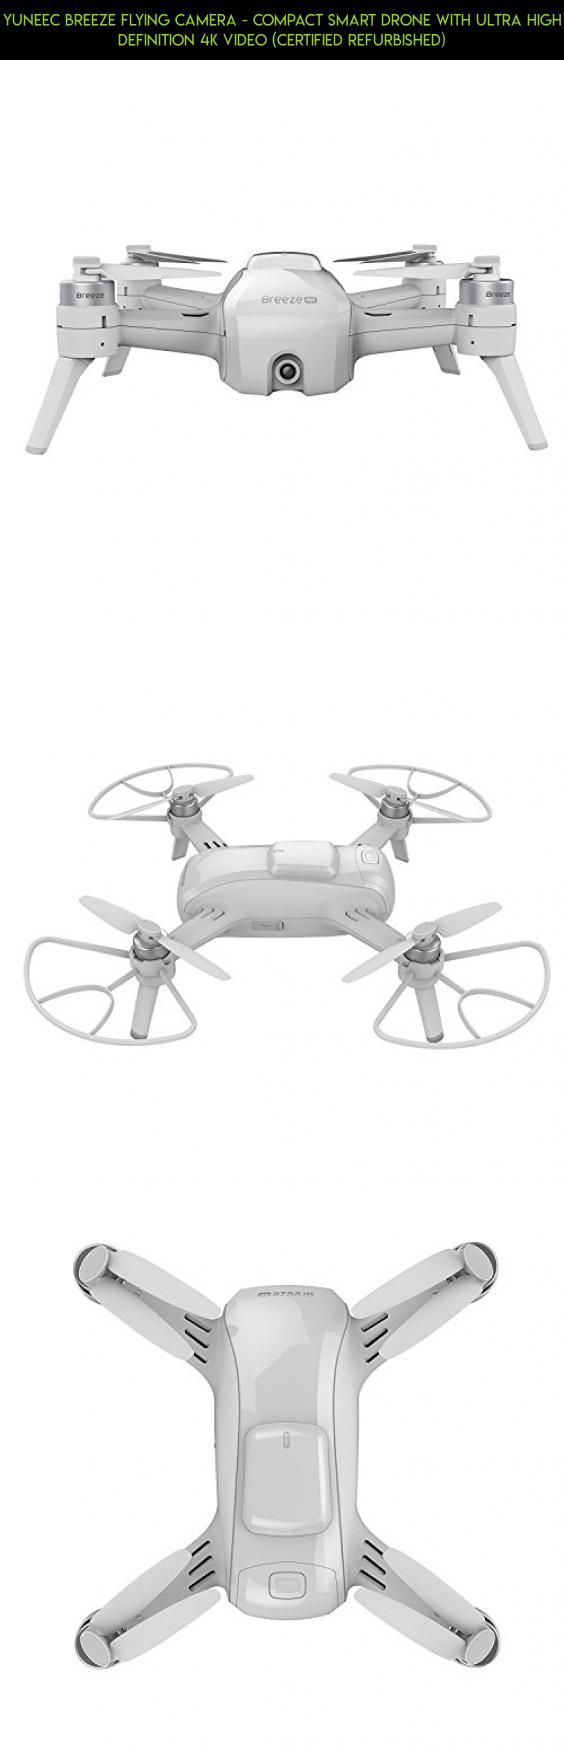 Yuneec Breeze Flying Camera - Compact Smart Drone with Ultra High Definition 4K video (Certified Refurbished) #kit #gadgets #camera #yuneec #parts #fpv #plans #breeze #products #drone #shopping #tech #technology #racing